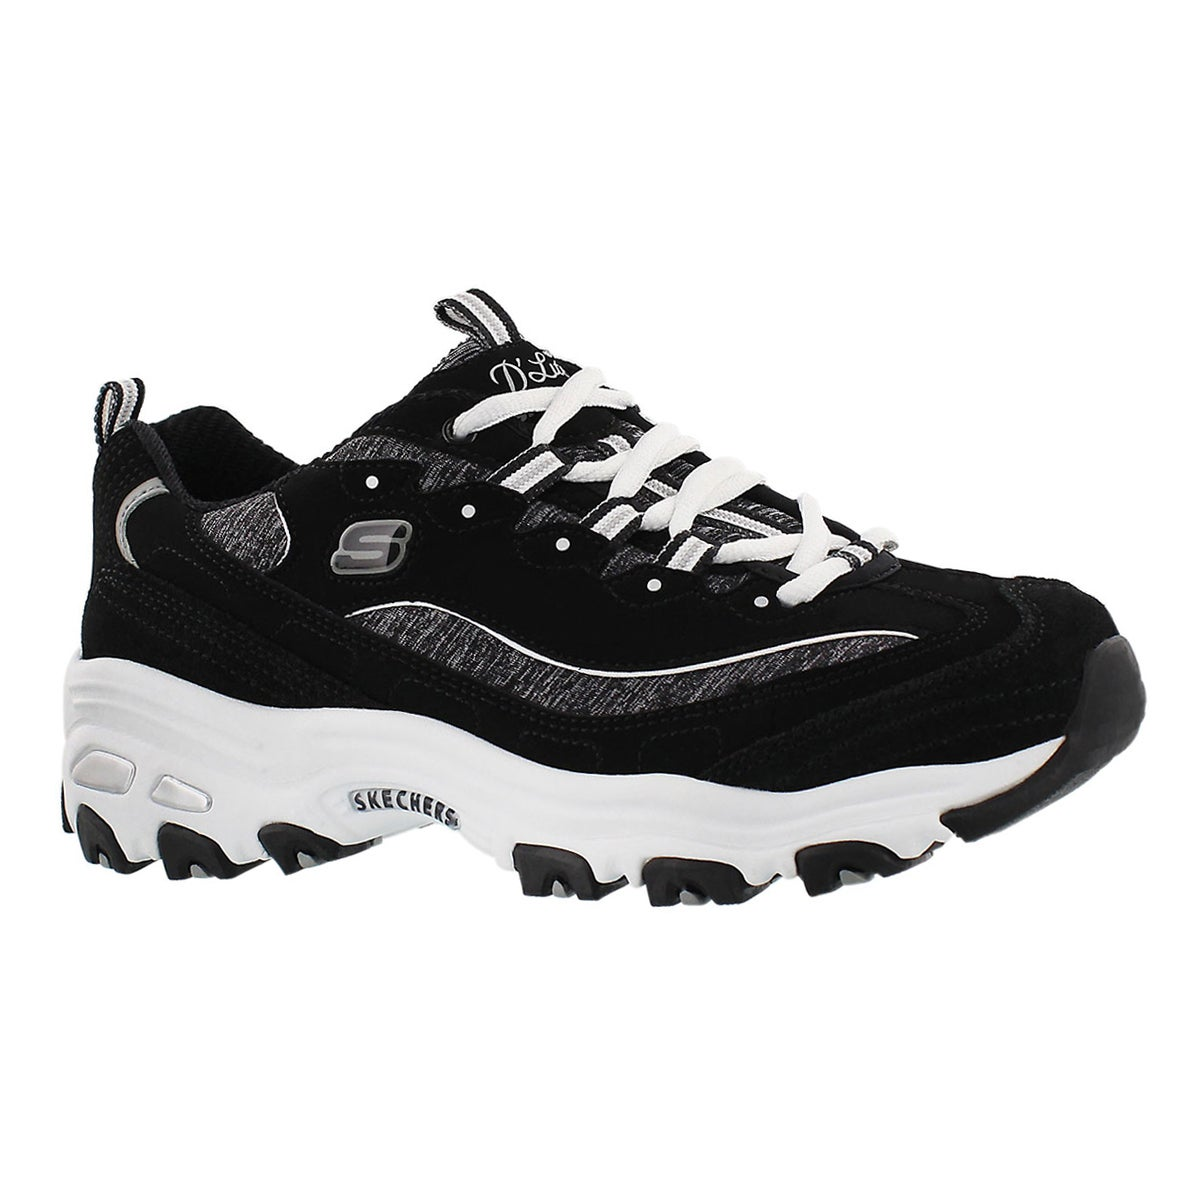 Women's D'LITES ME TIME black/white sneakers